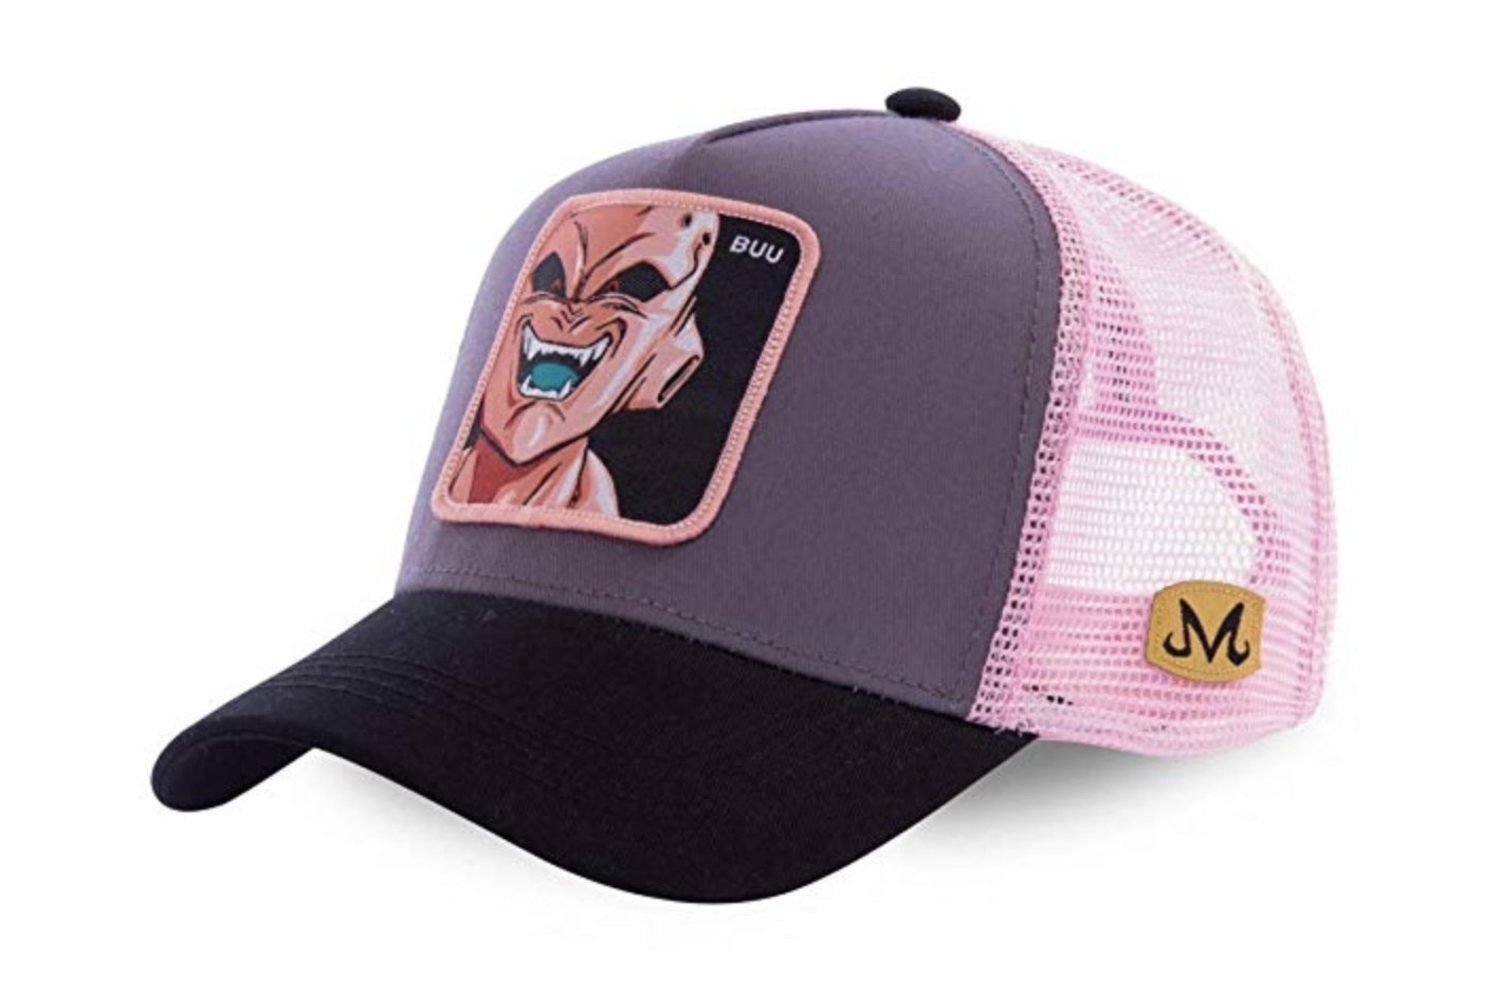 Gorra trucker de Buu de 'Dragon Ball'.